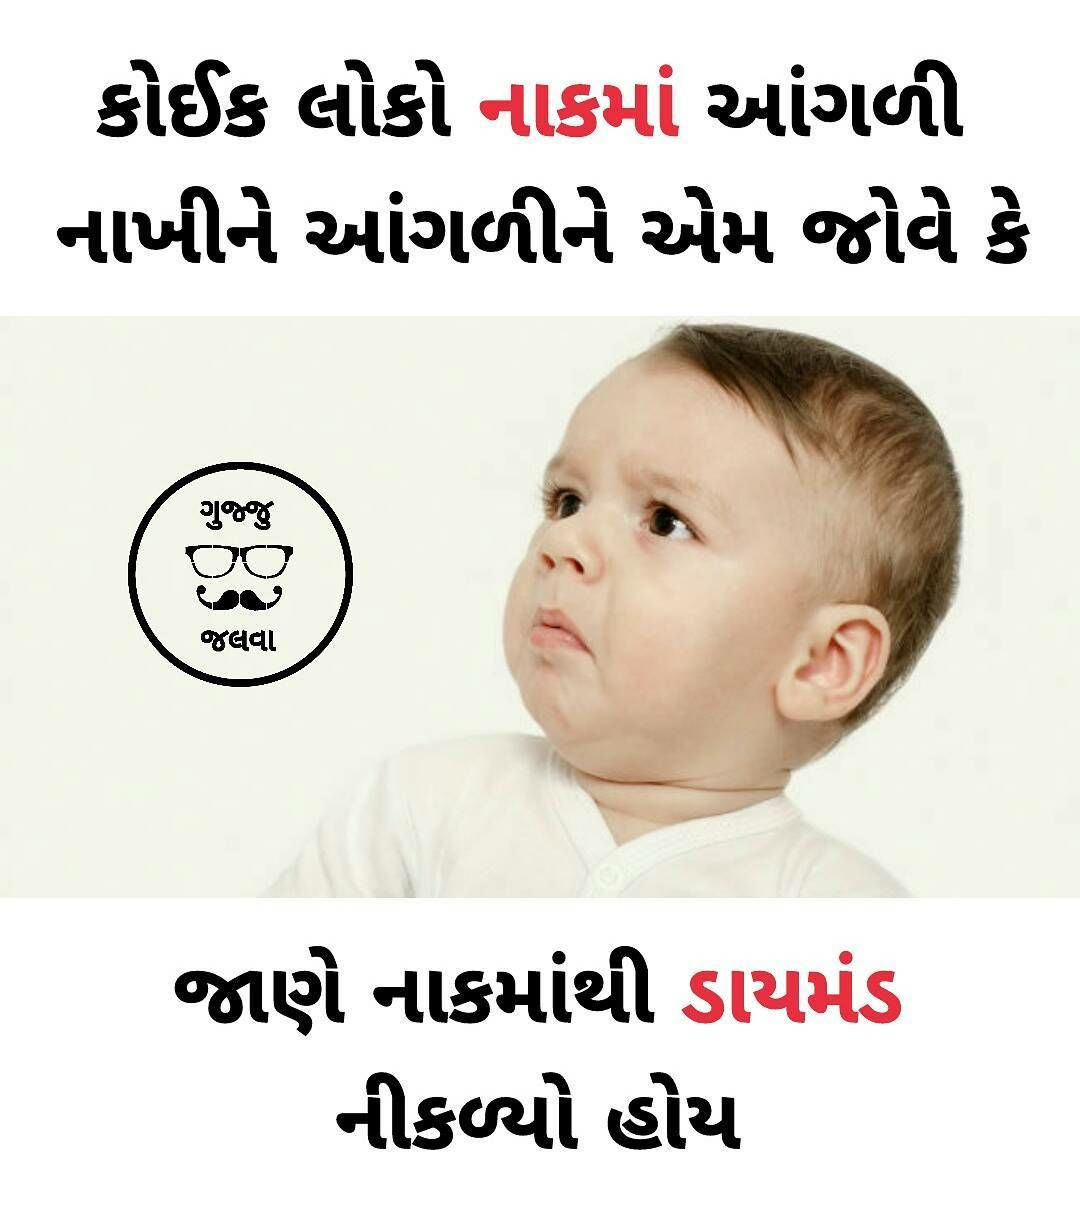 gujarati-jokes-picture-22.jpg